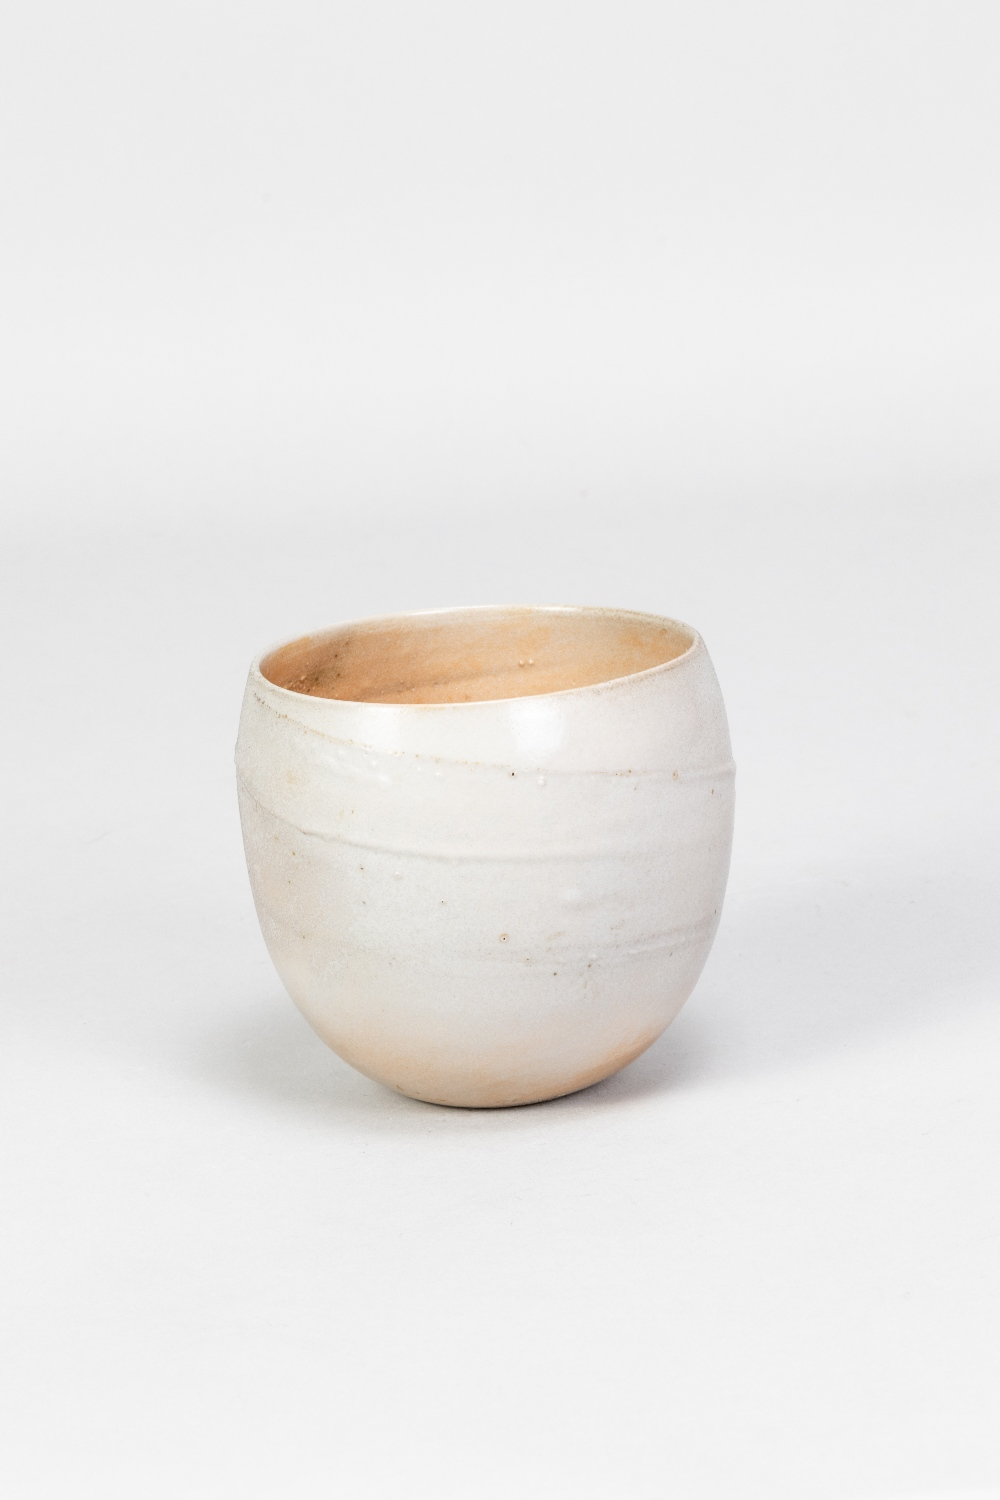 JOANNA CONSTANTINIDIS (1927-2000); a small porcelain vessel, part lustred with incised spiral